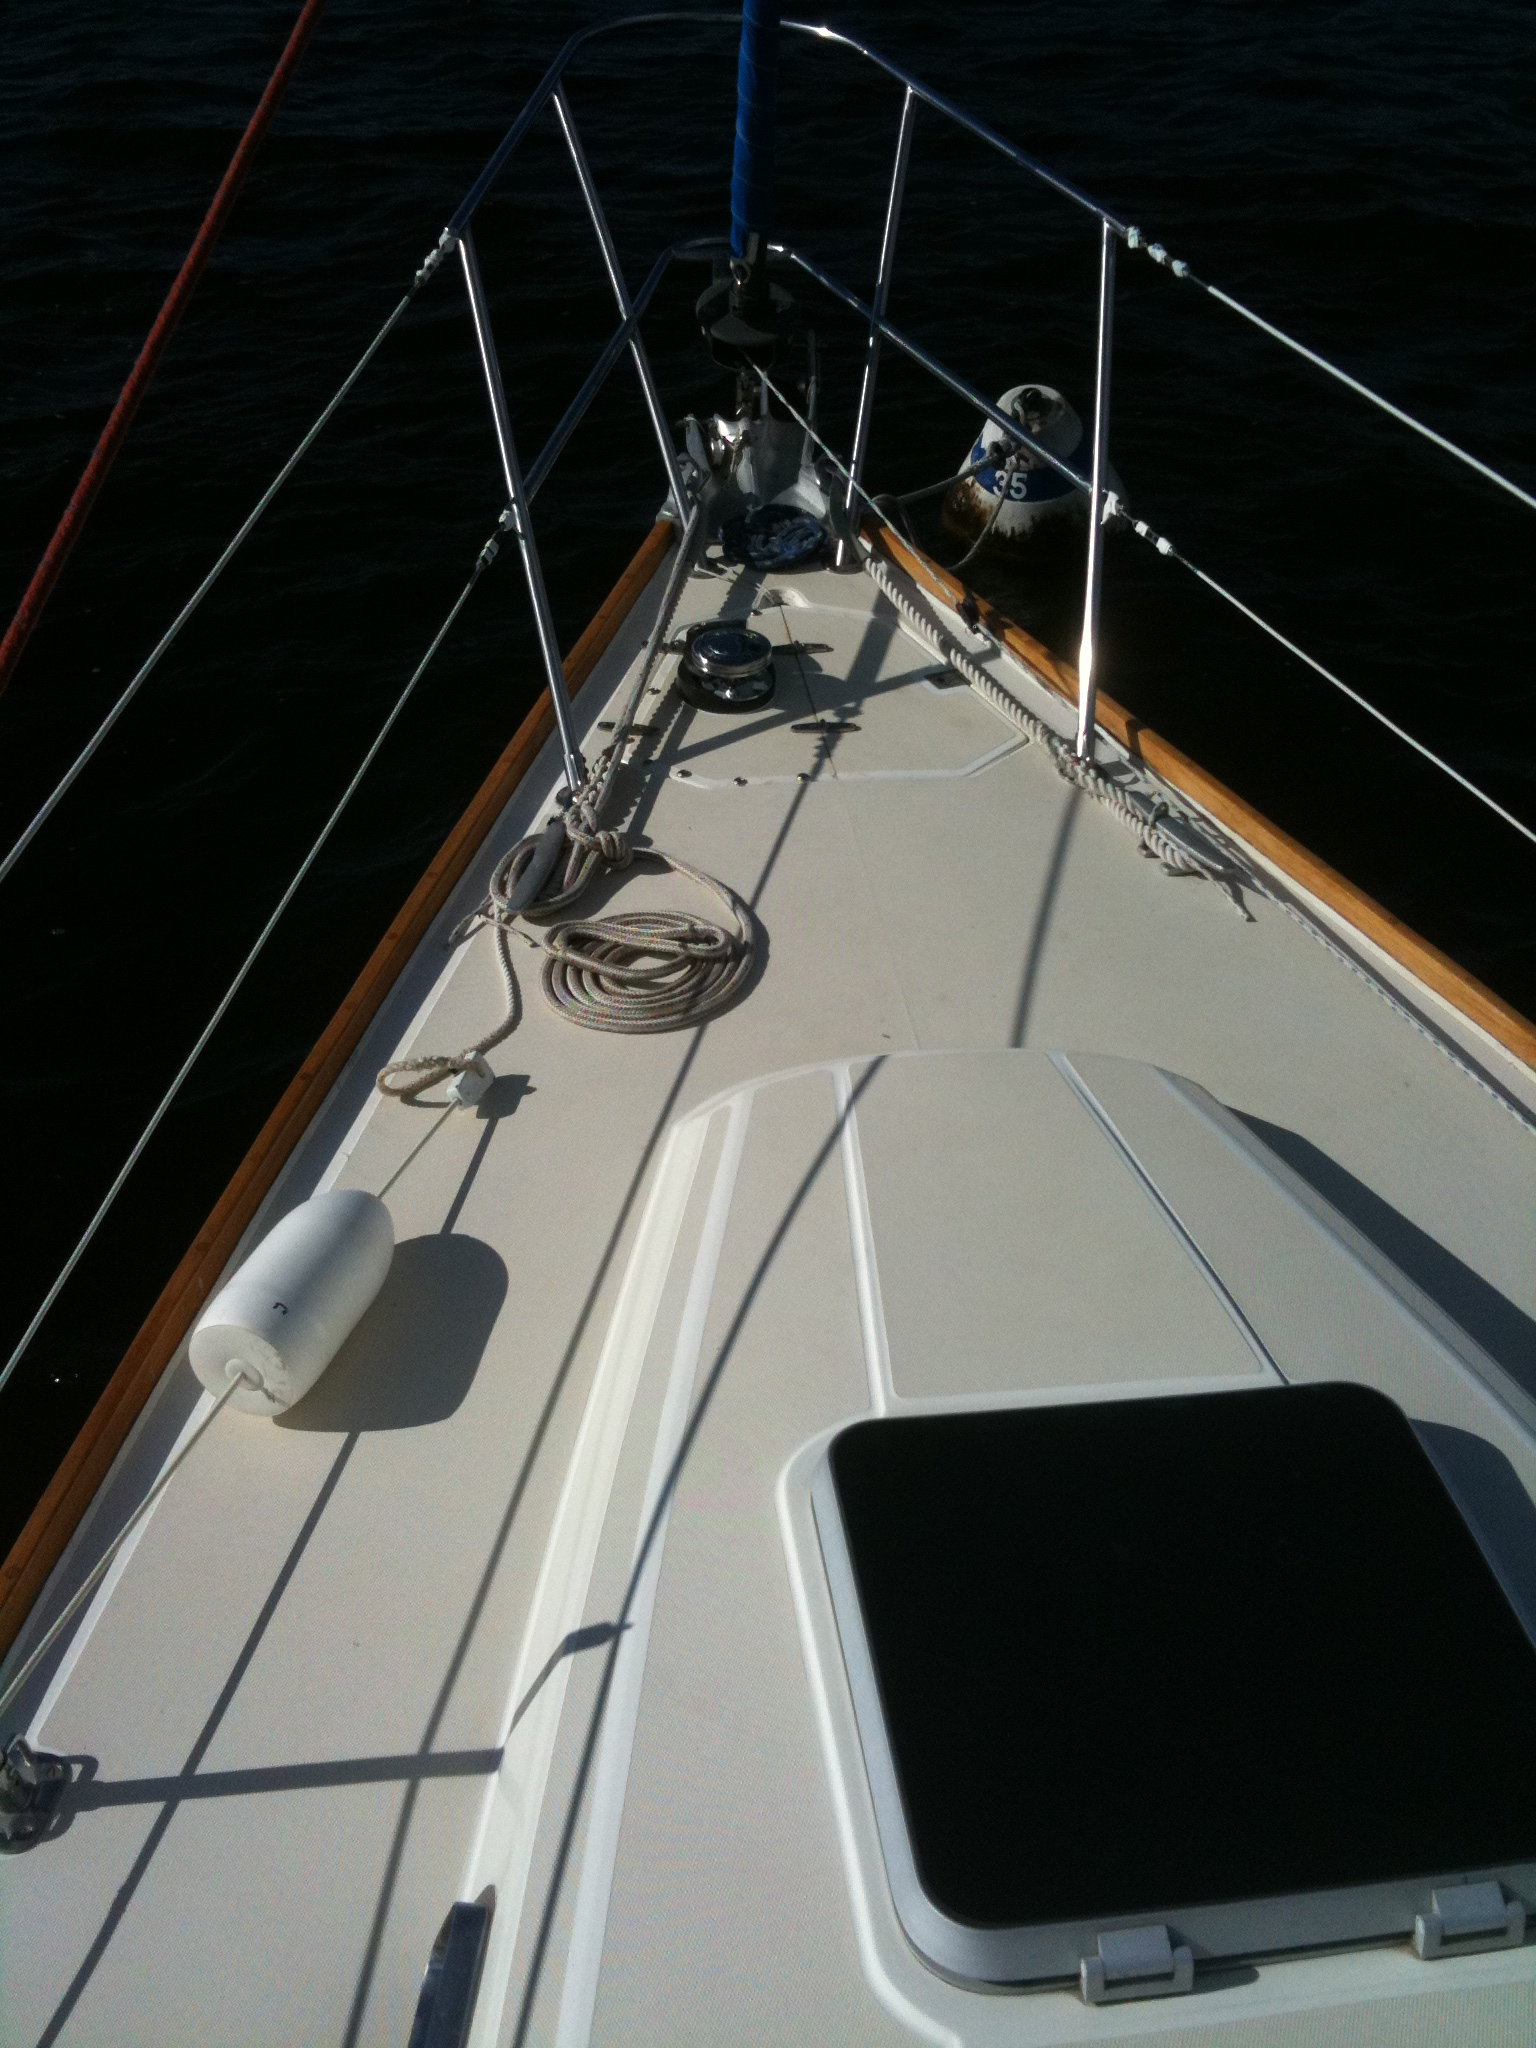 1/3 of boat shown.  Photo taken at mast